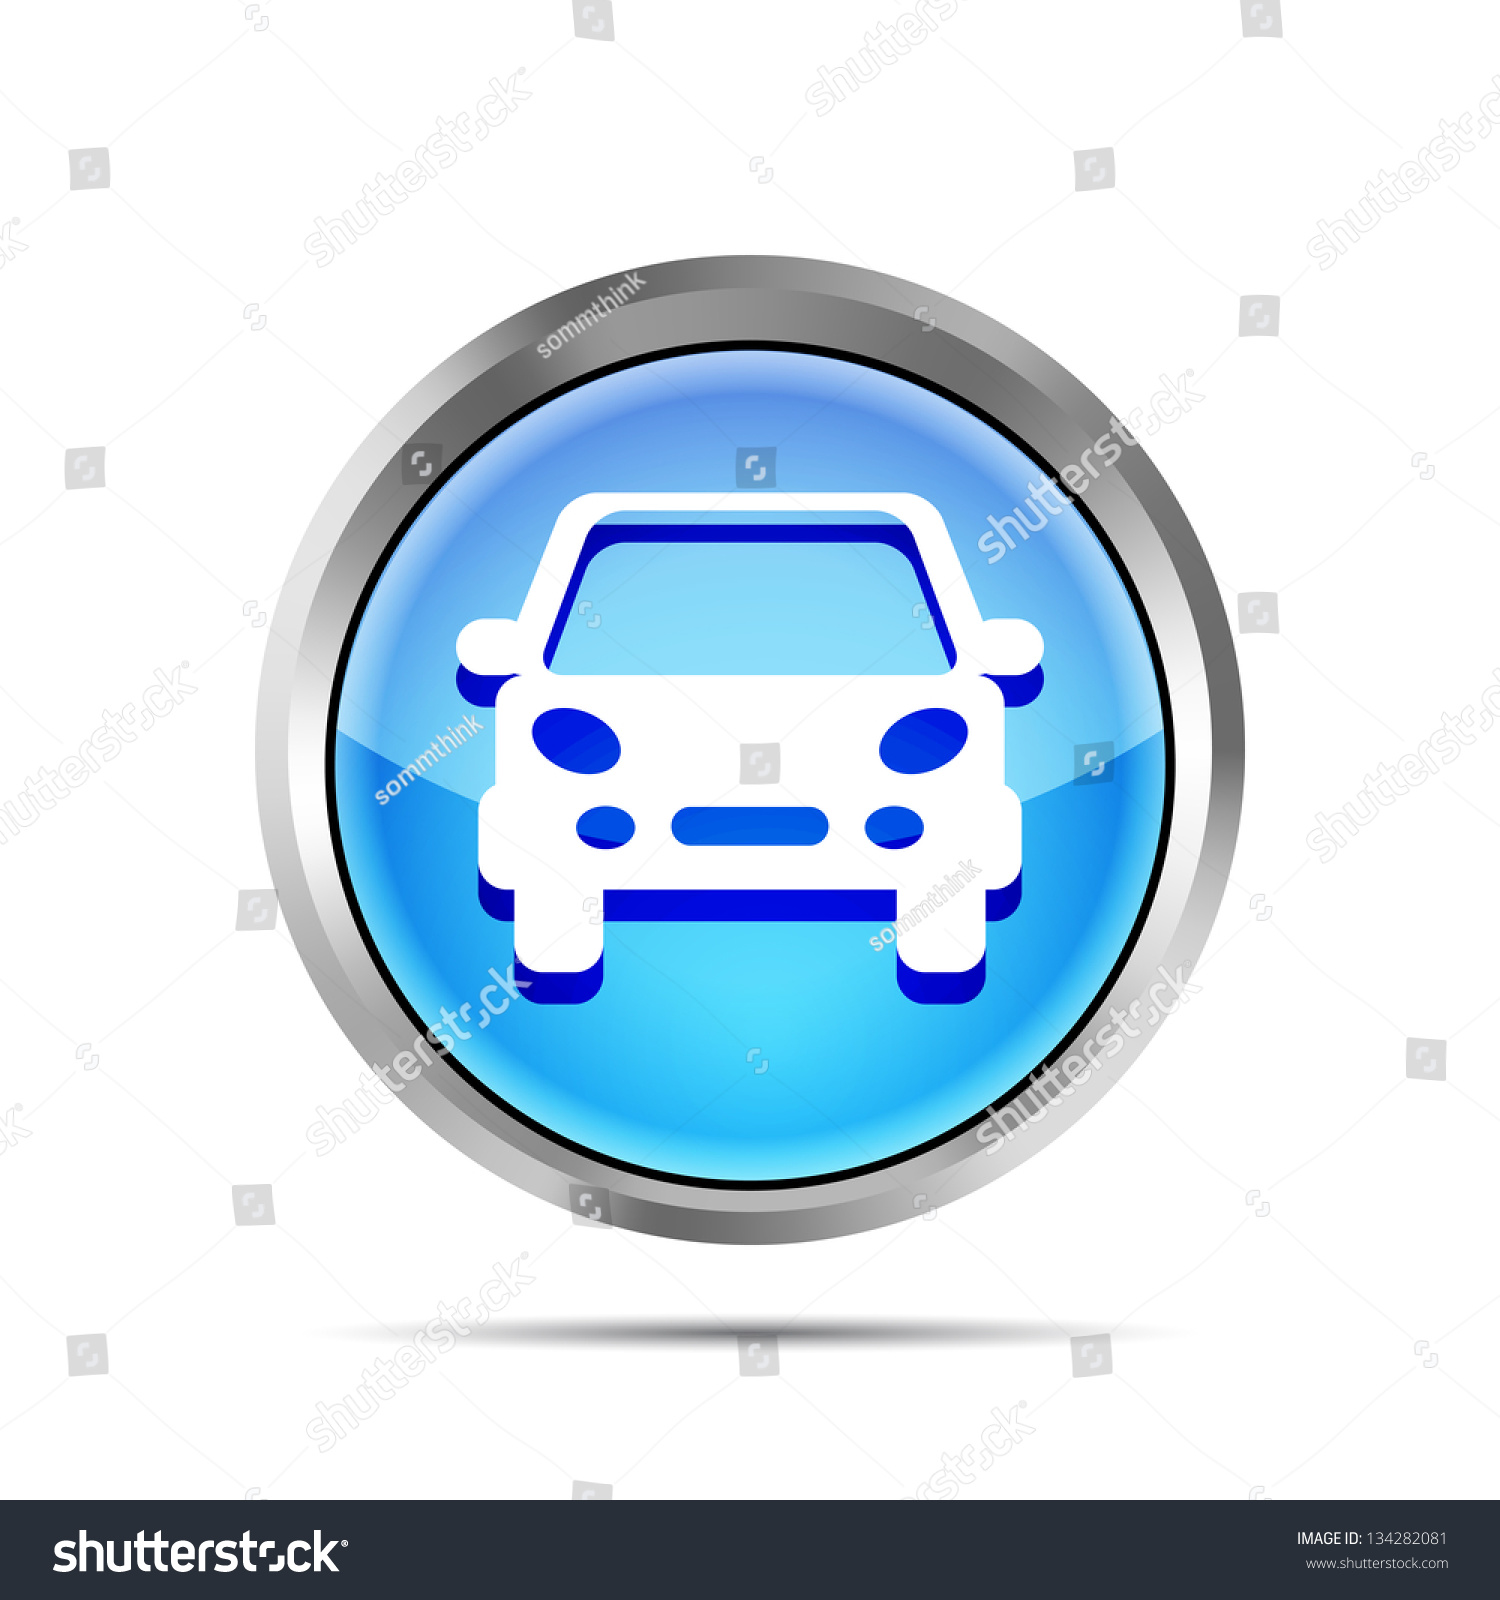 blue car button icon on a white background stock vector illustration 134282081 shutterstock. Black Bedroom Furniture Sets. Home Design Ideas